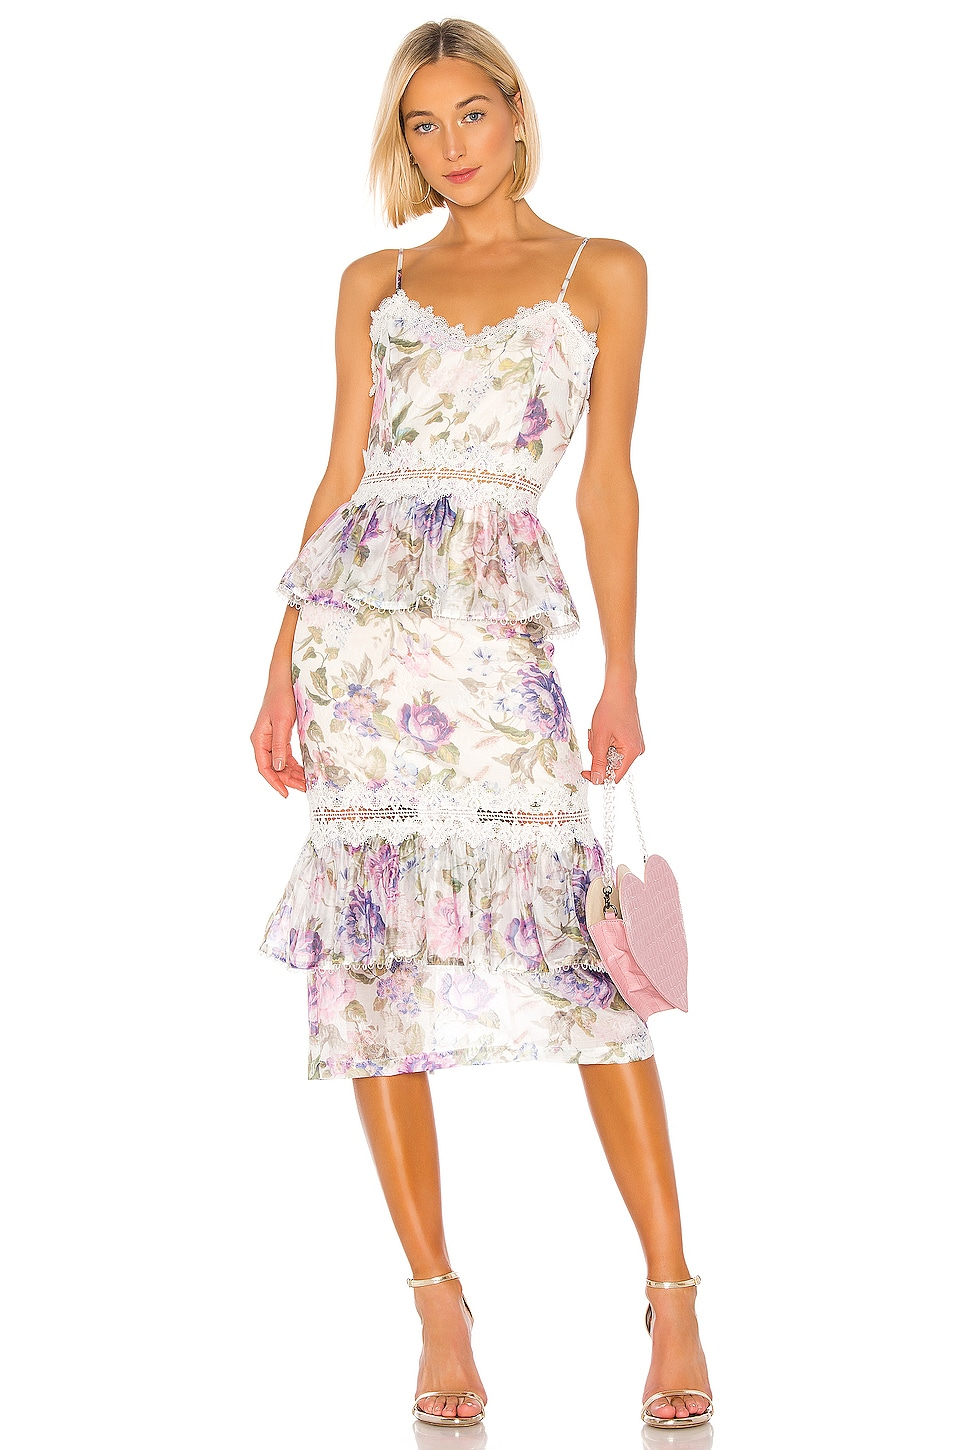 V. Chapman Daffodil Dress in Floral Printe